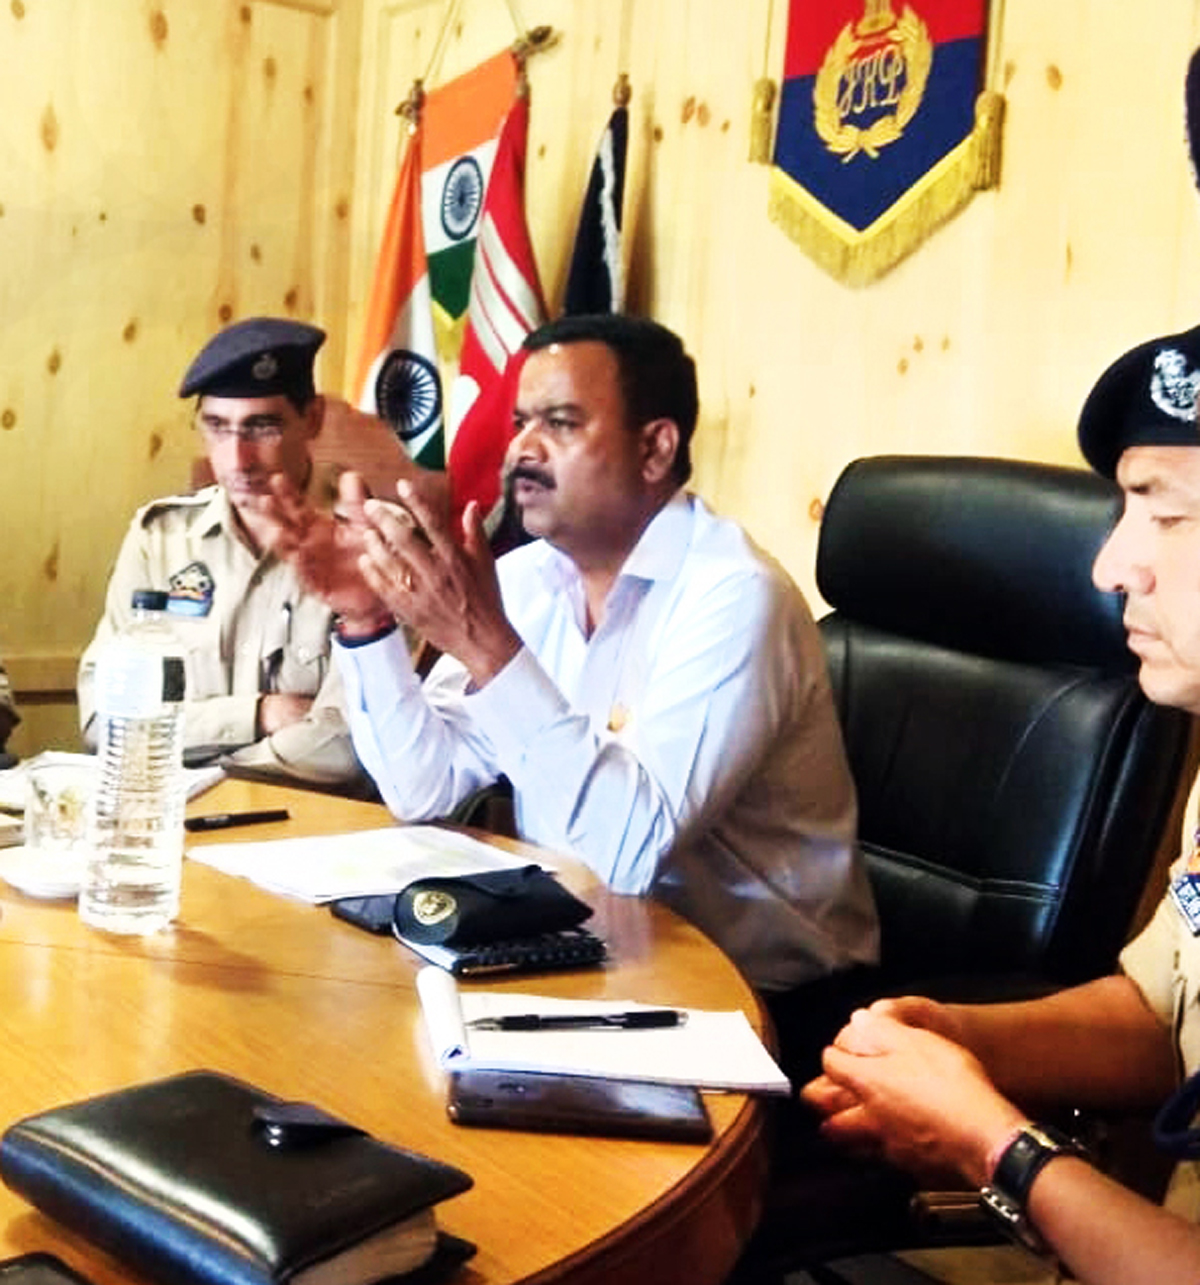 IGP Traffic Alok Kumar briefing officers and officials during a meeting at Srinagar.